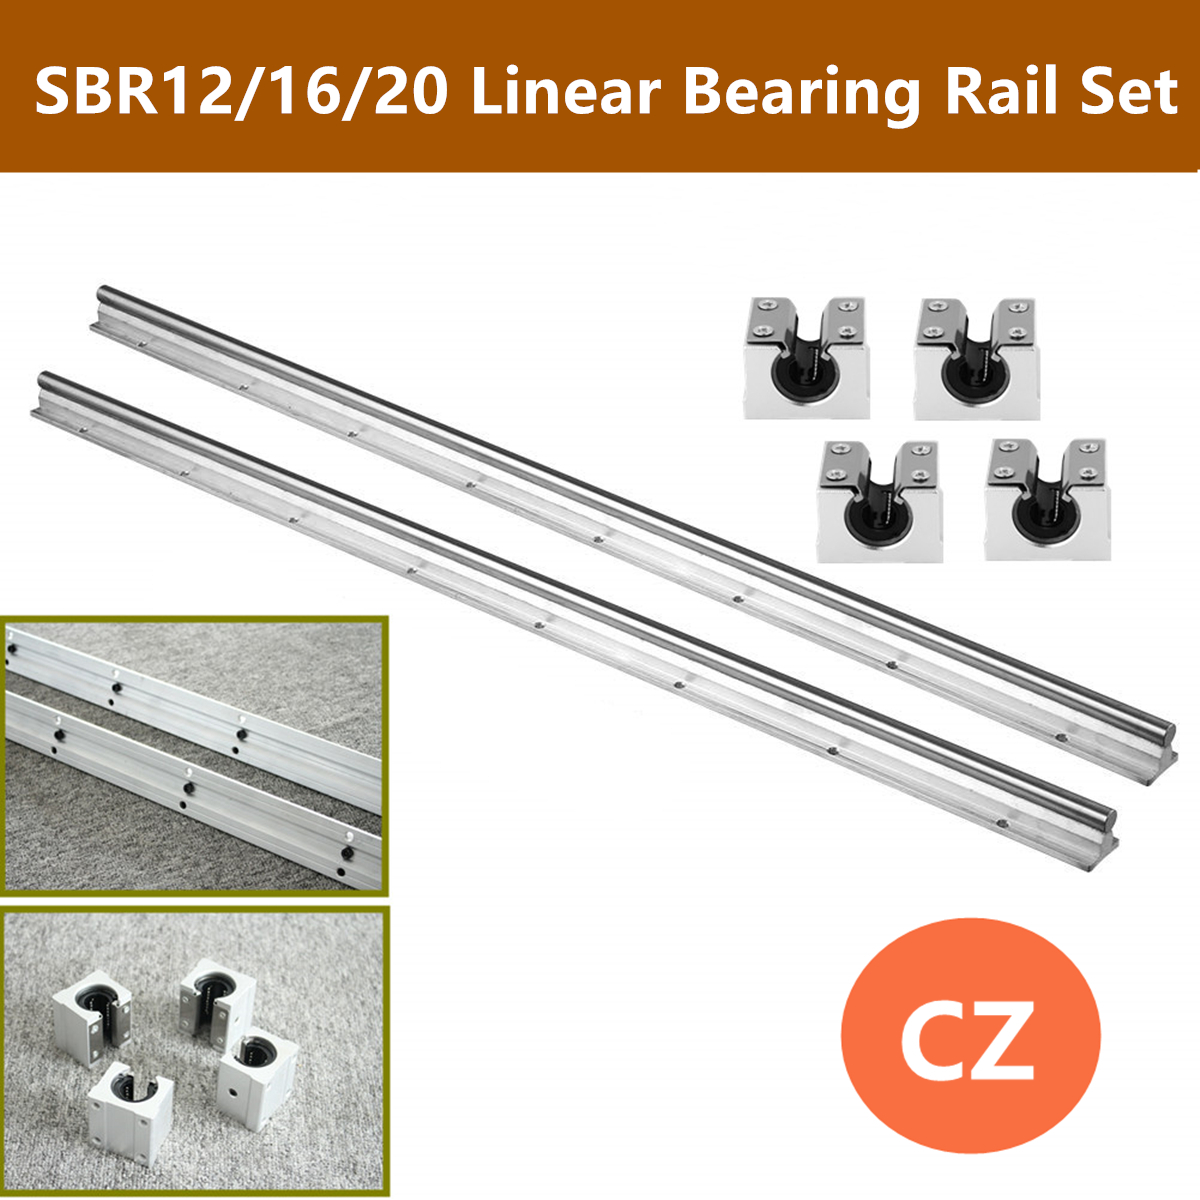 2Pcs SBR12/16/20 200mm-1500mm 12MM 16MM 20MM Linear Bearing Rail Slide Guide Shaft + 4Pcs SBR12UU/SBR16UU/SBR20UU Blocks